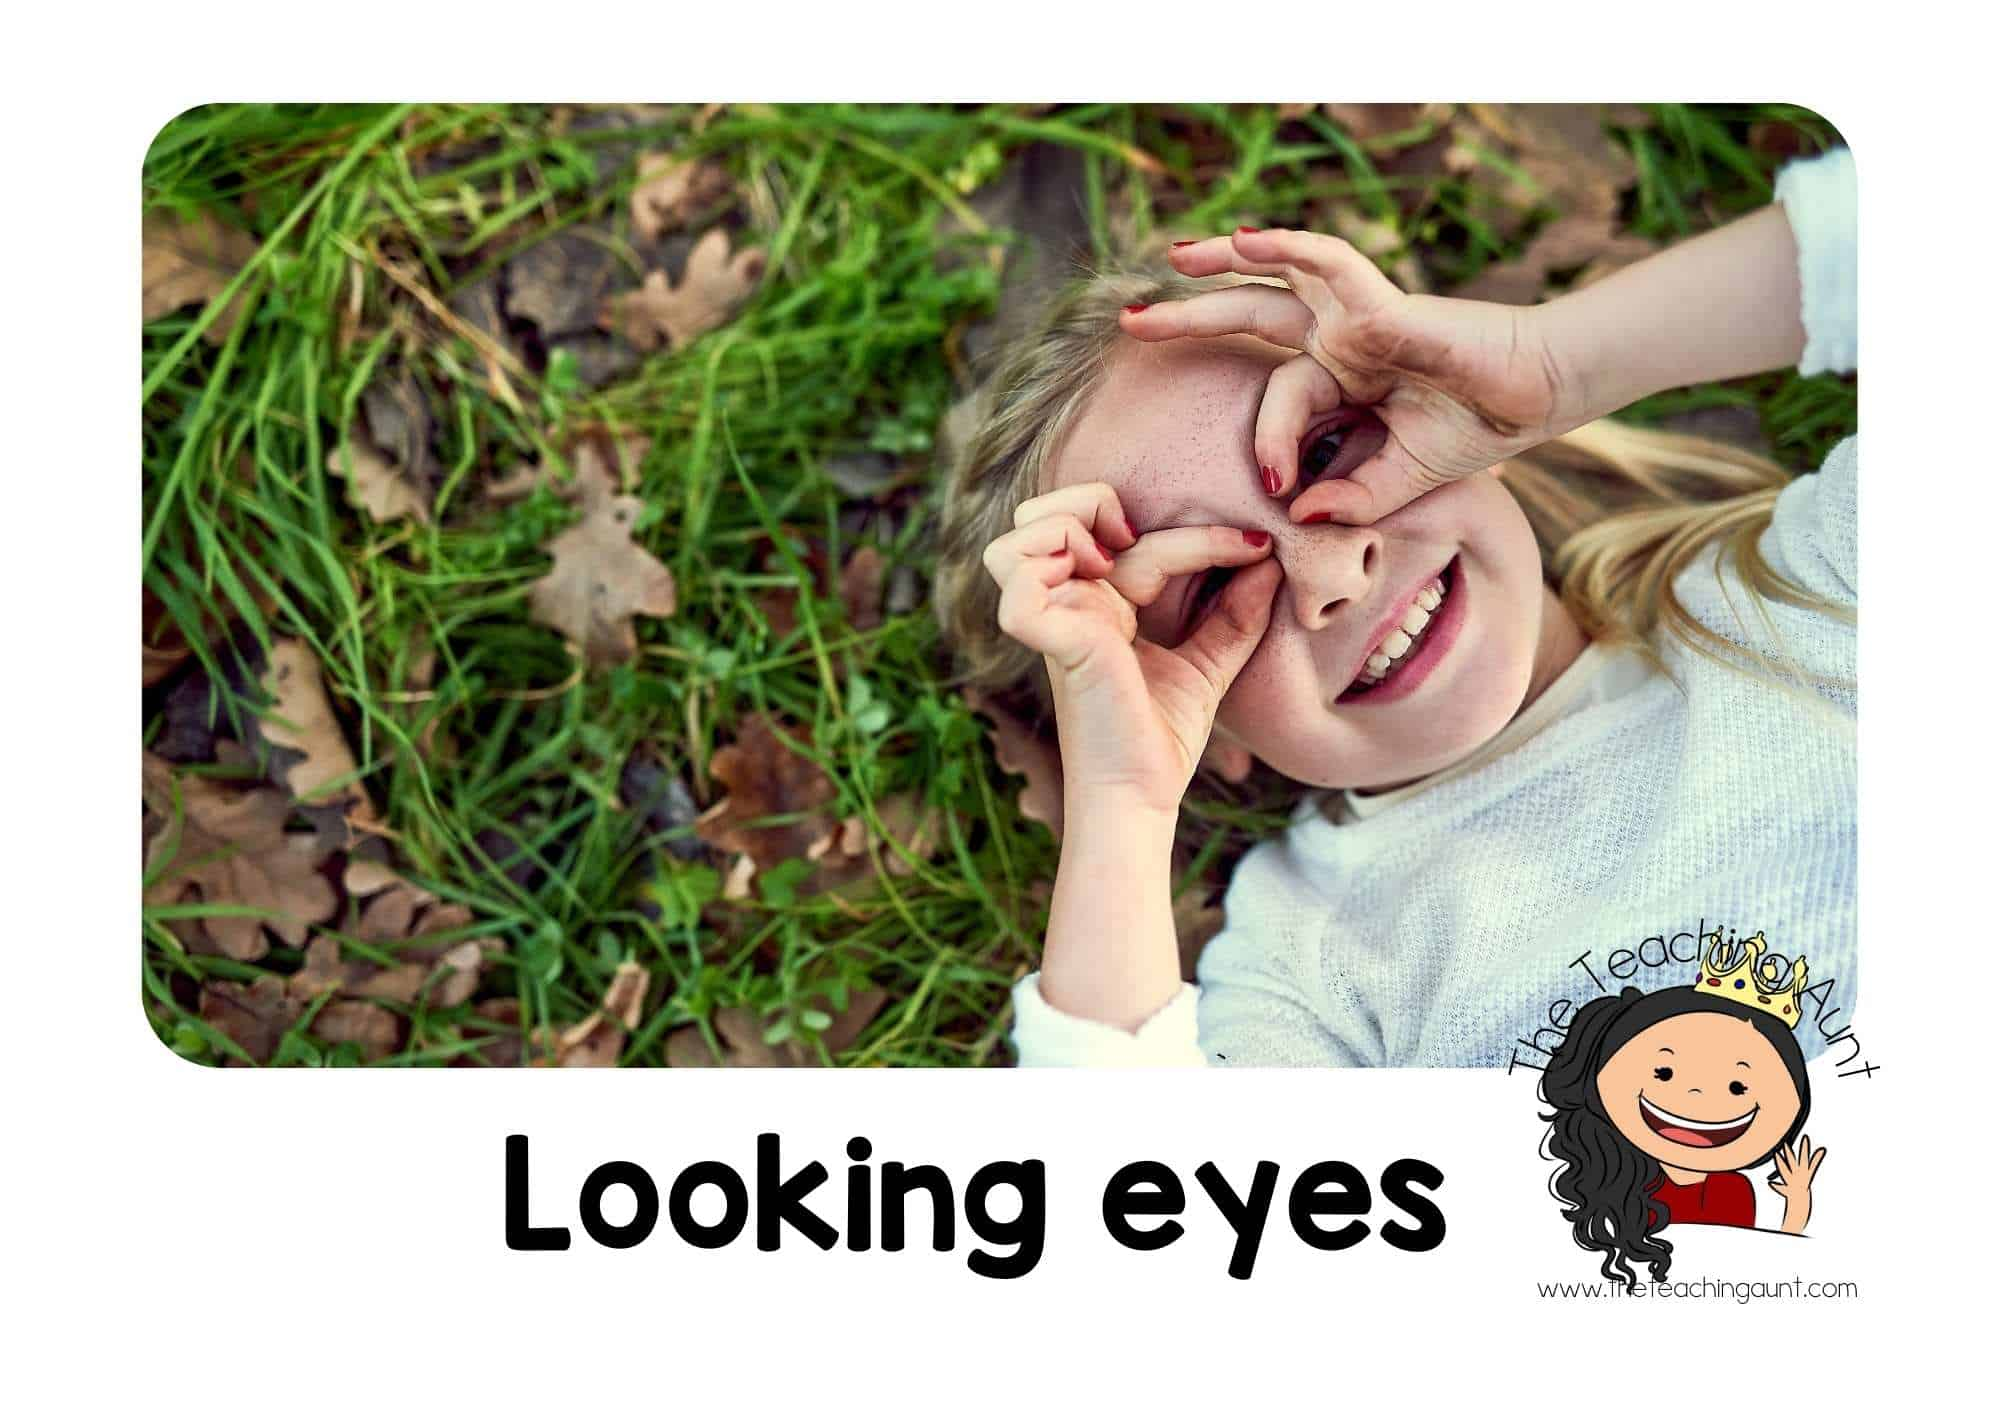 Free Classroom Rules Posters for Preschool- Looking eyes